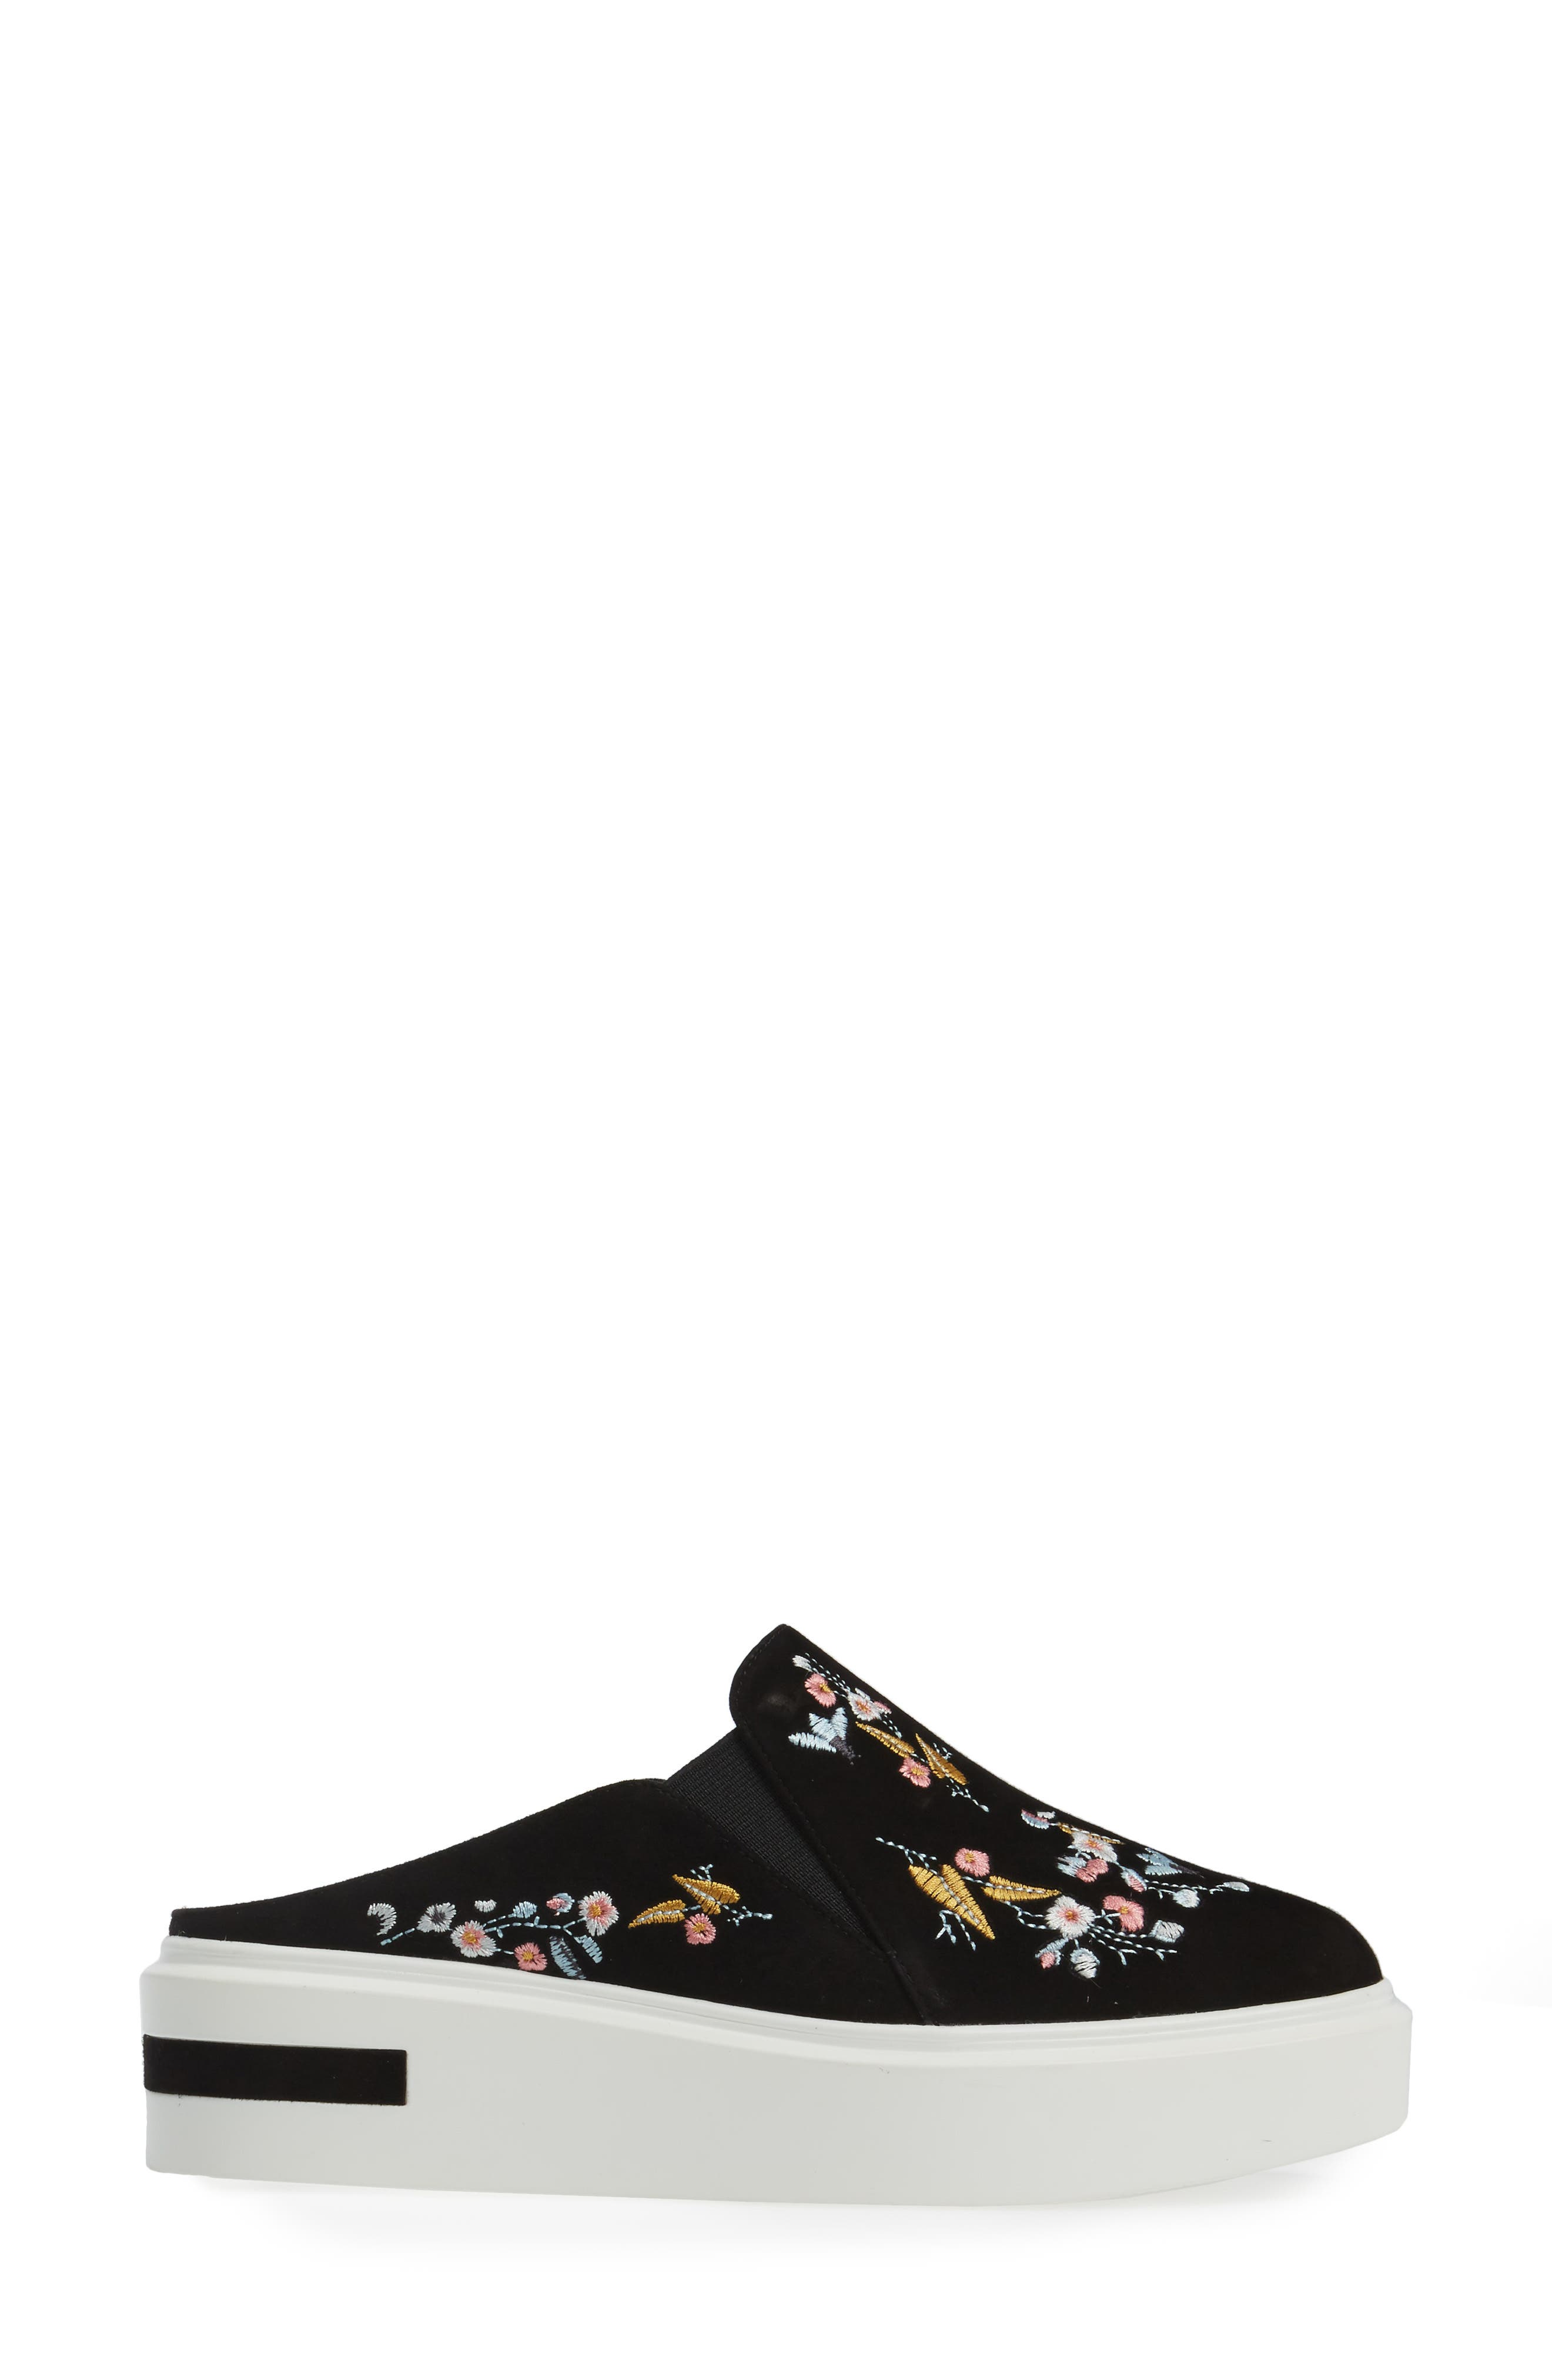 Alternate Image 3  - Linea Paolo Fab II Embroidered Platform Sneaker (Women)